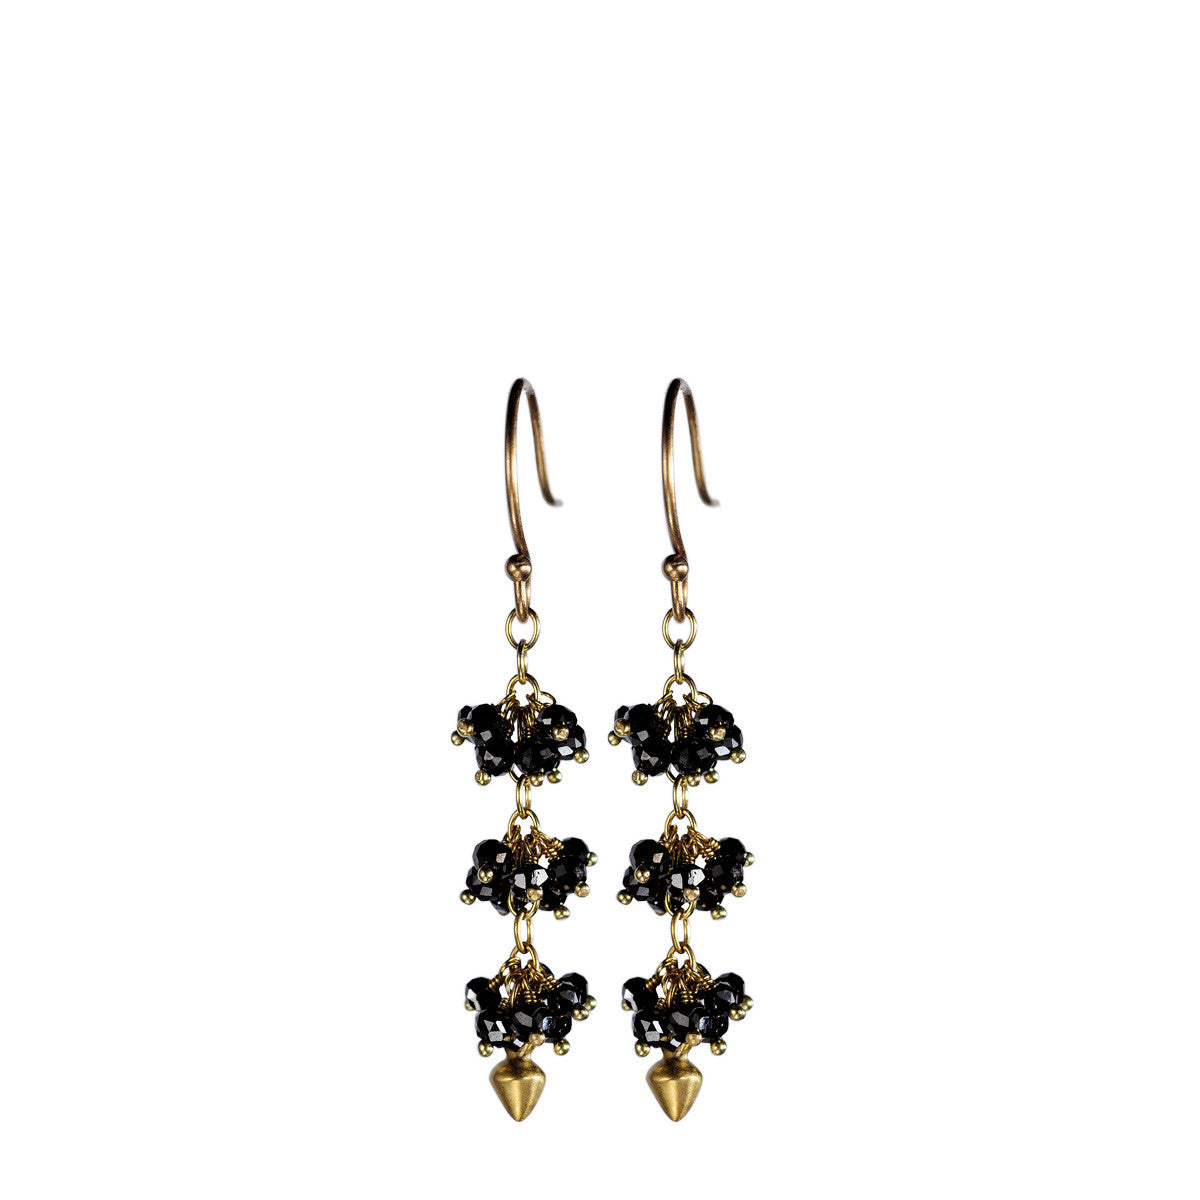 18K Gold 3 Beaded Black Diamonds Cluster Earrings with Lotus Buds